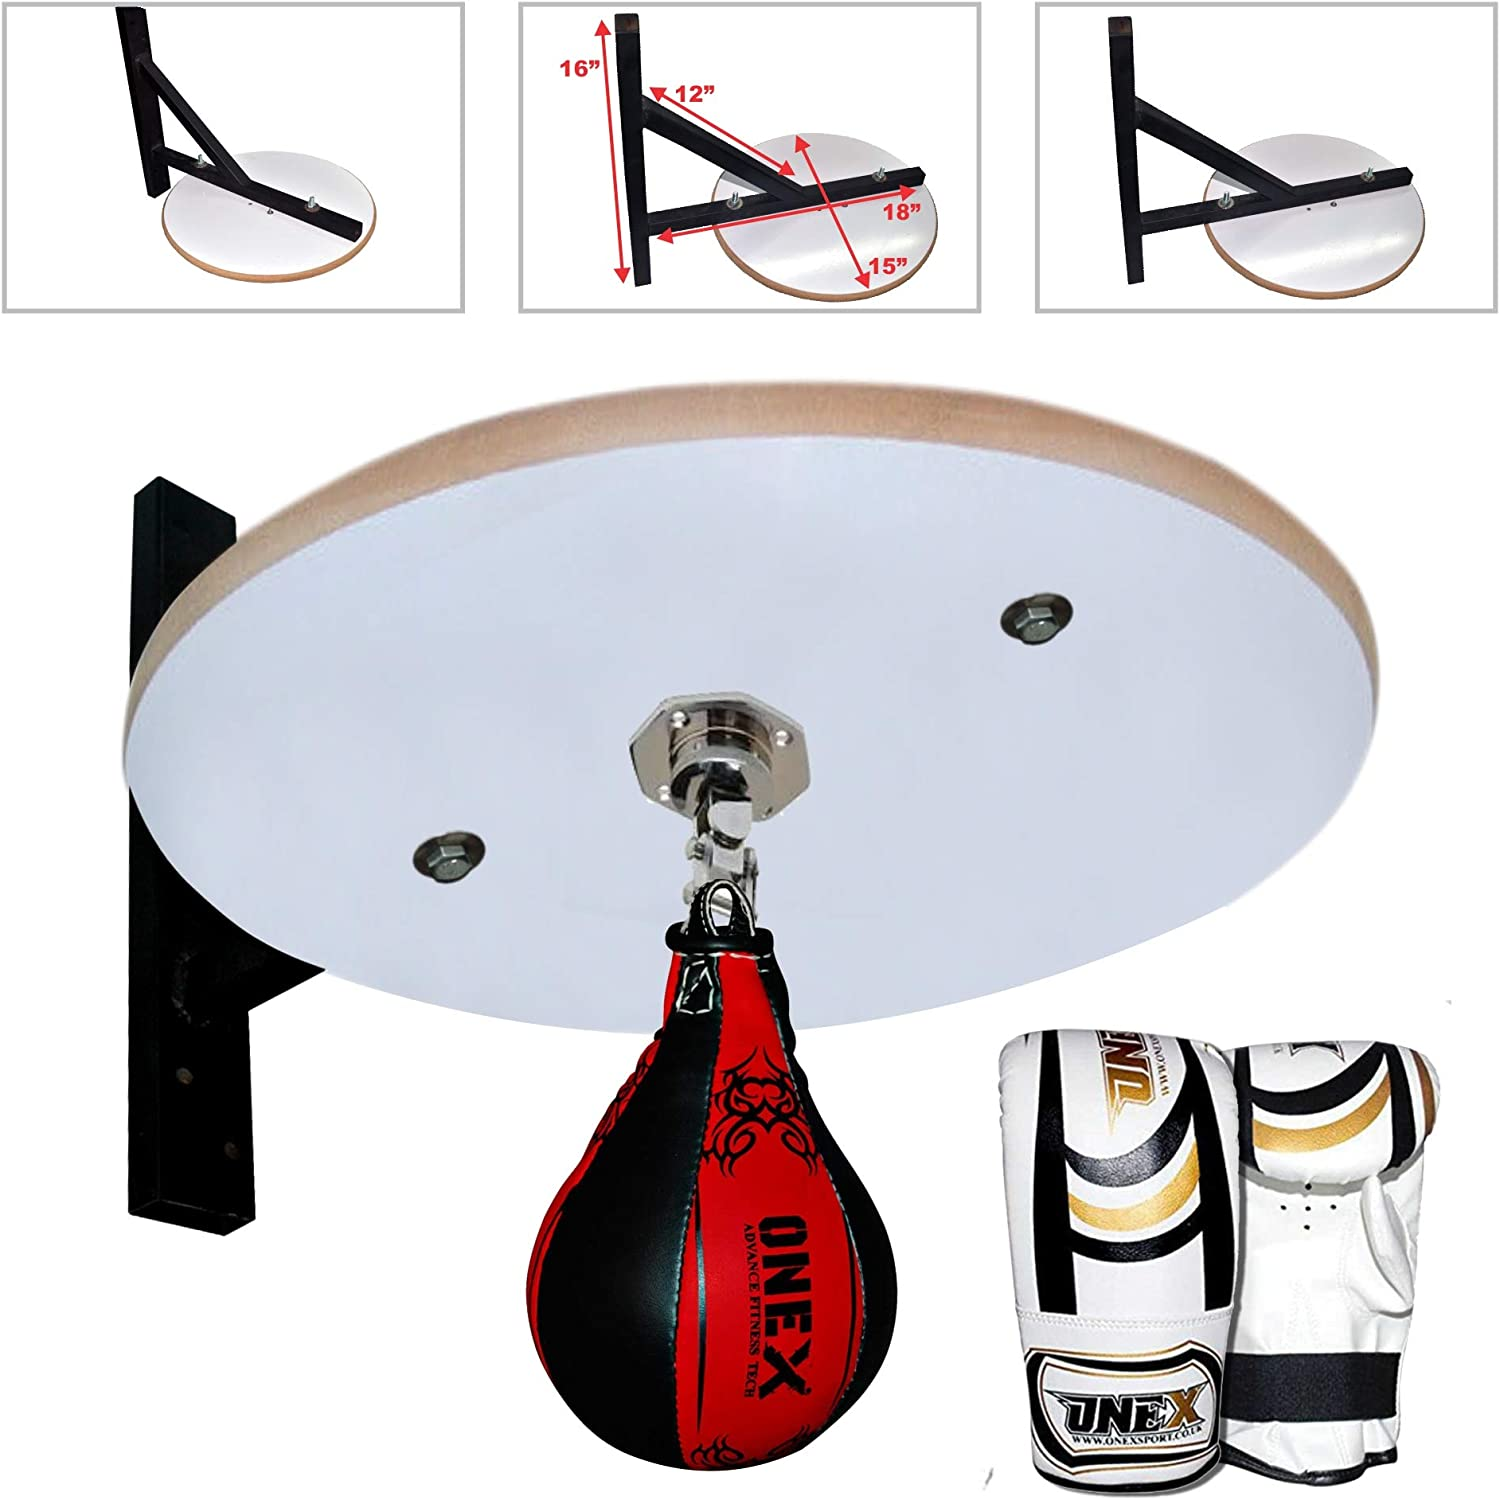 Single end Ball Adult Platform Training Set MMA Swivel Stand Hand Support Wraps